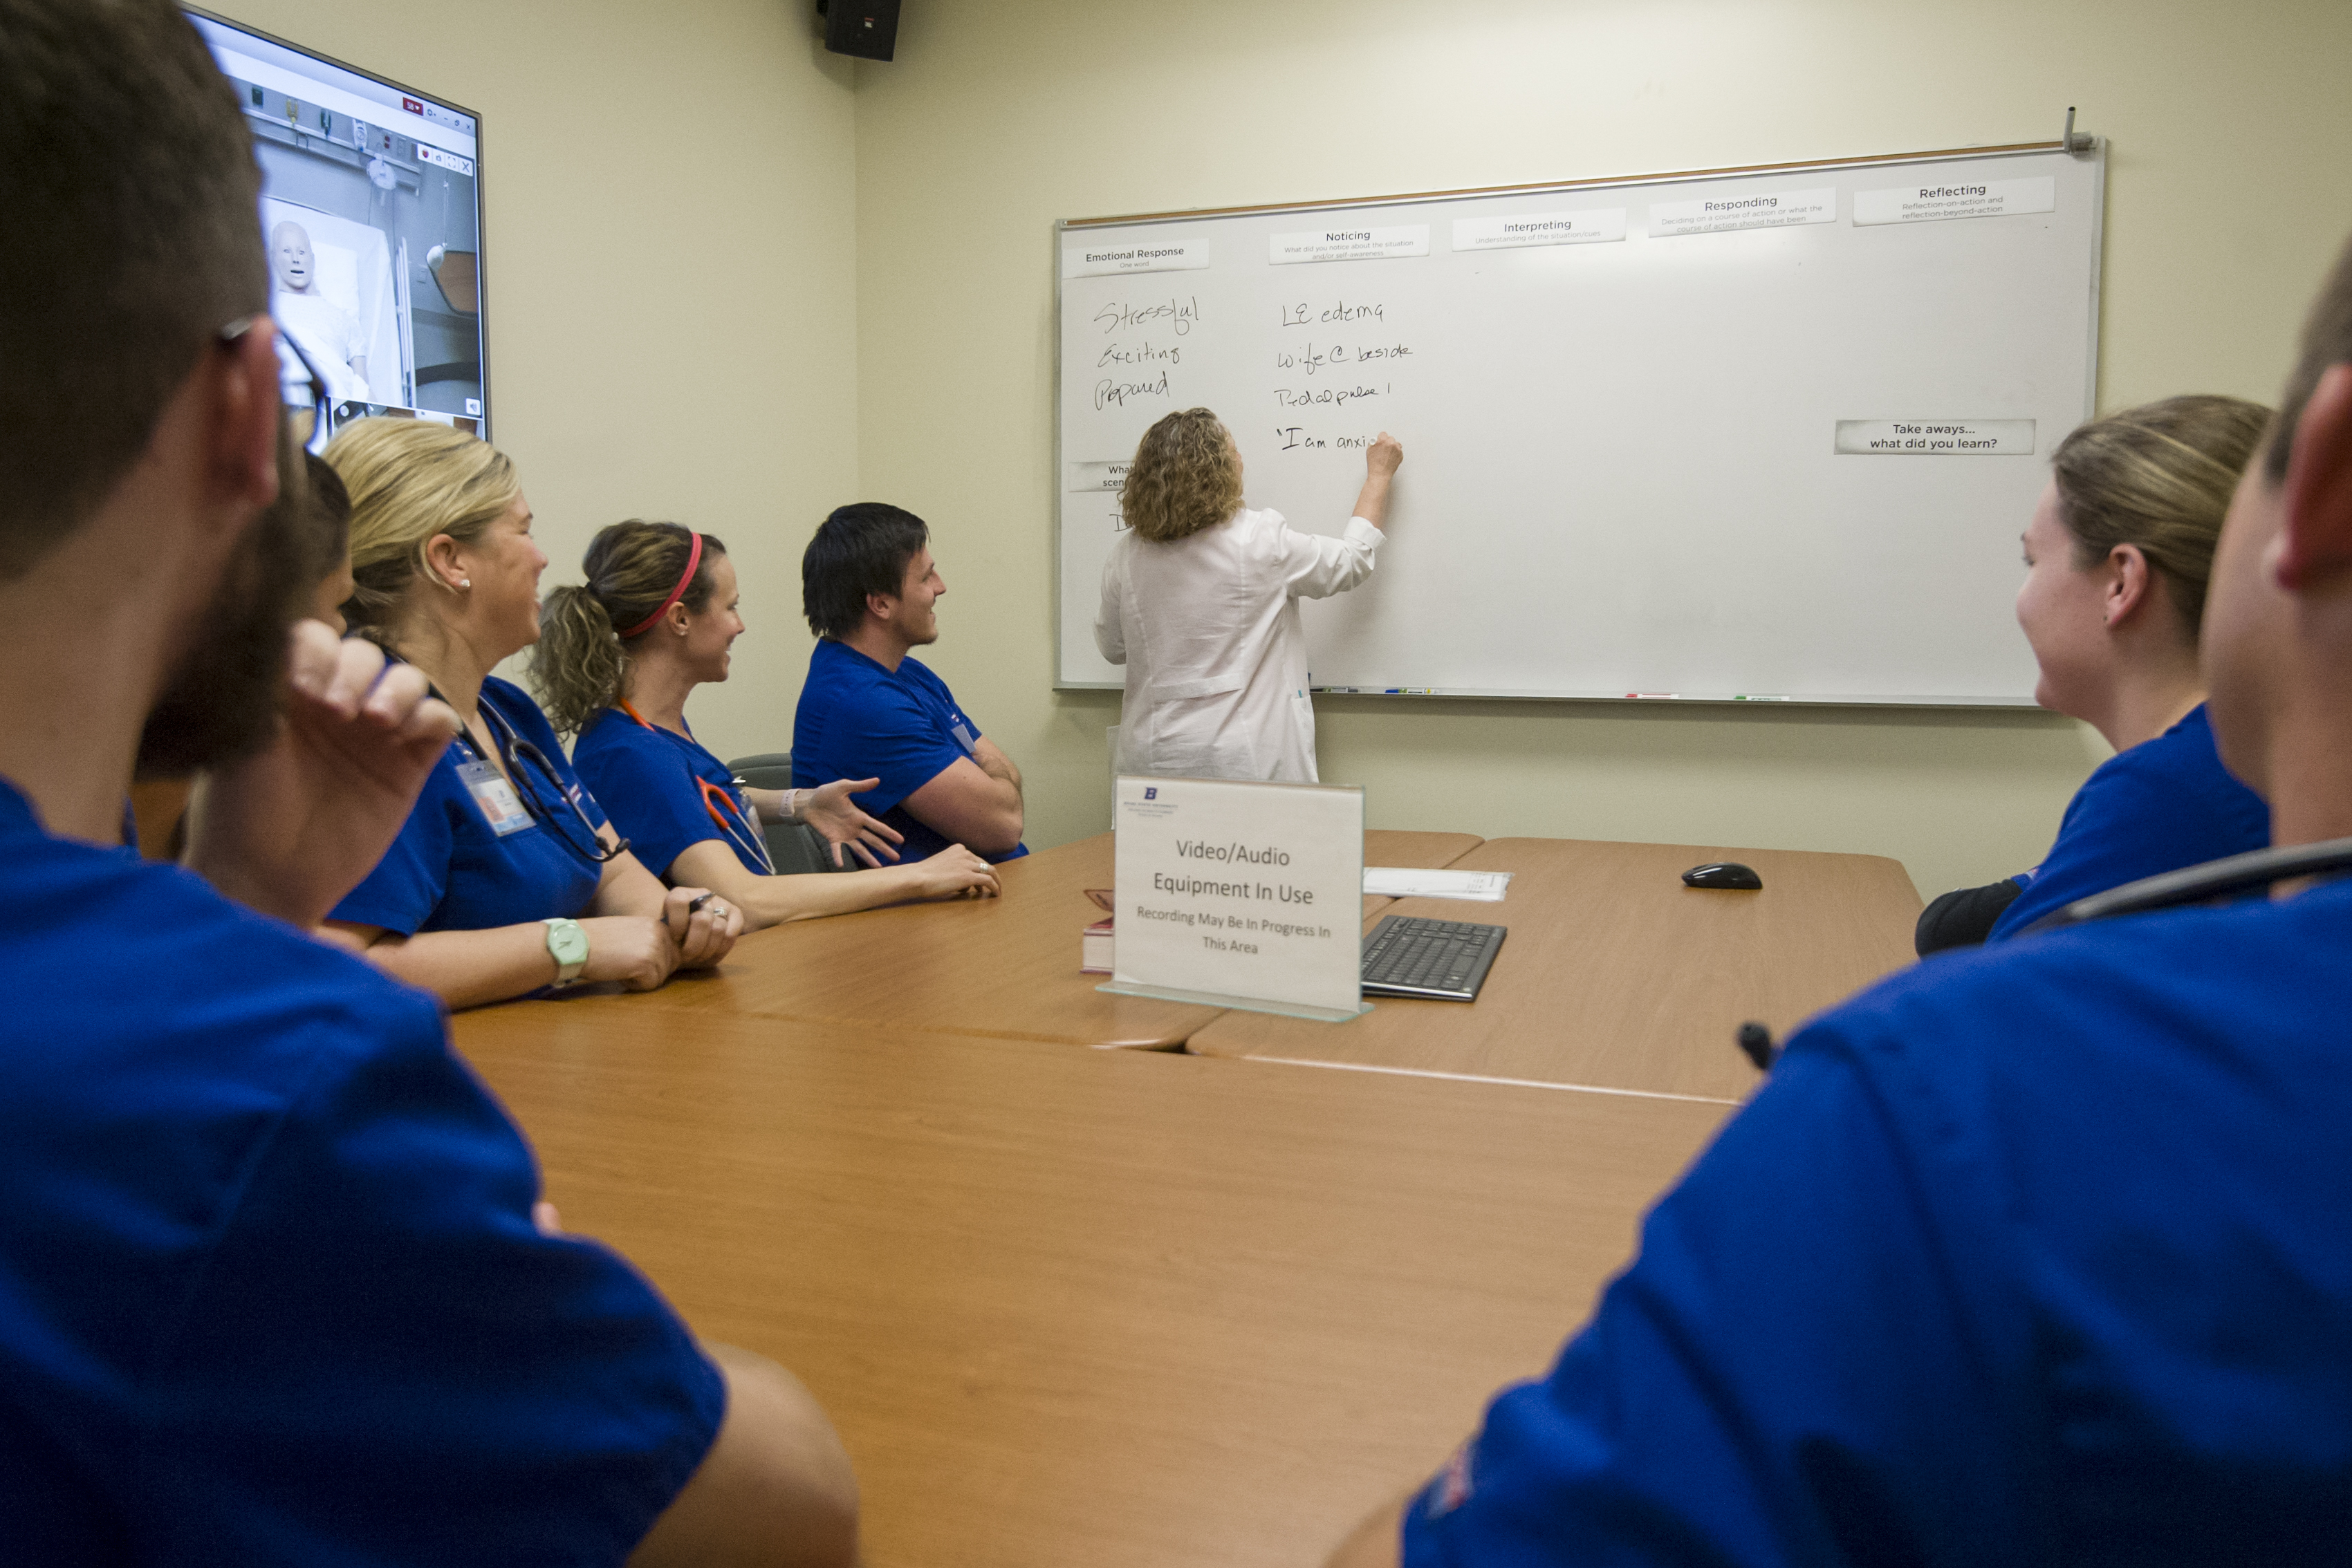 Students debriefing after a simulation